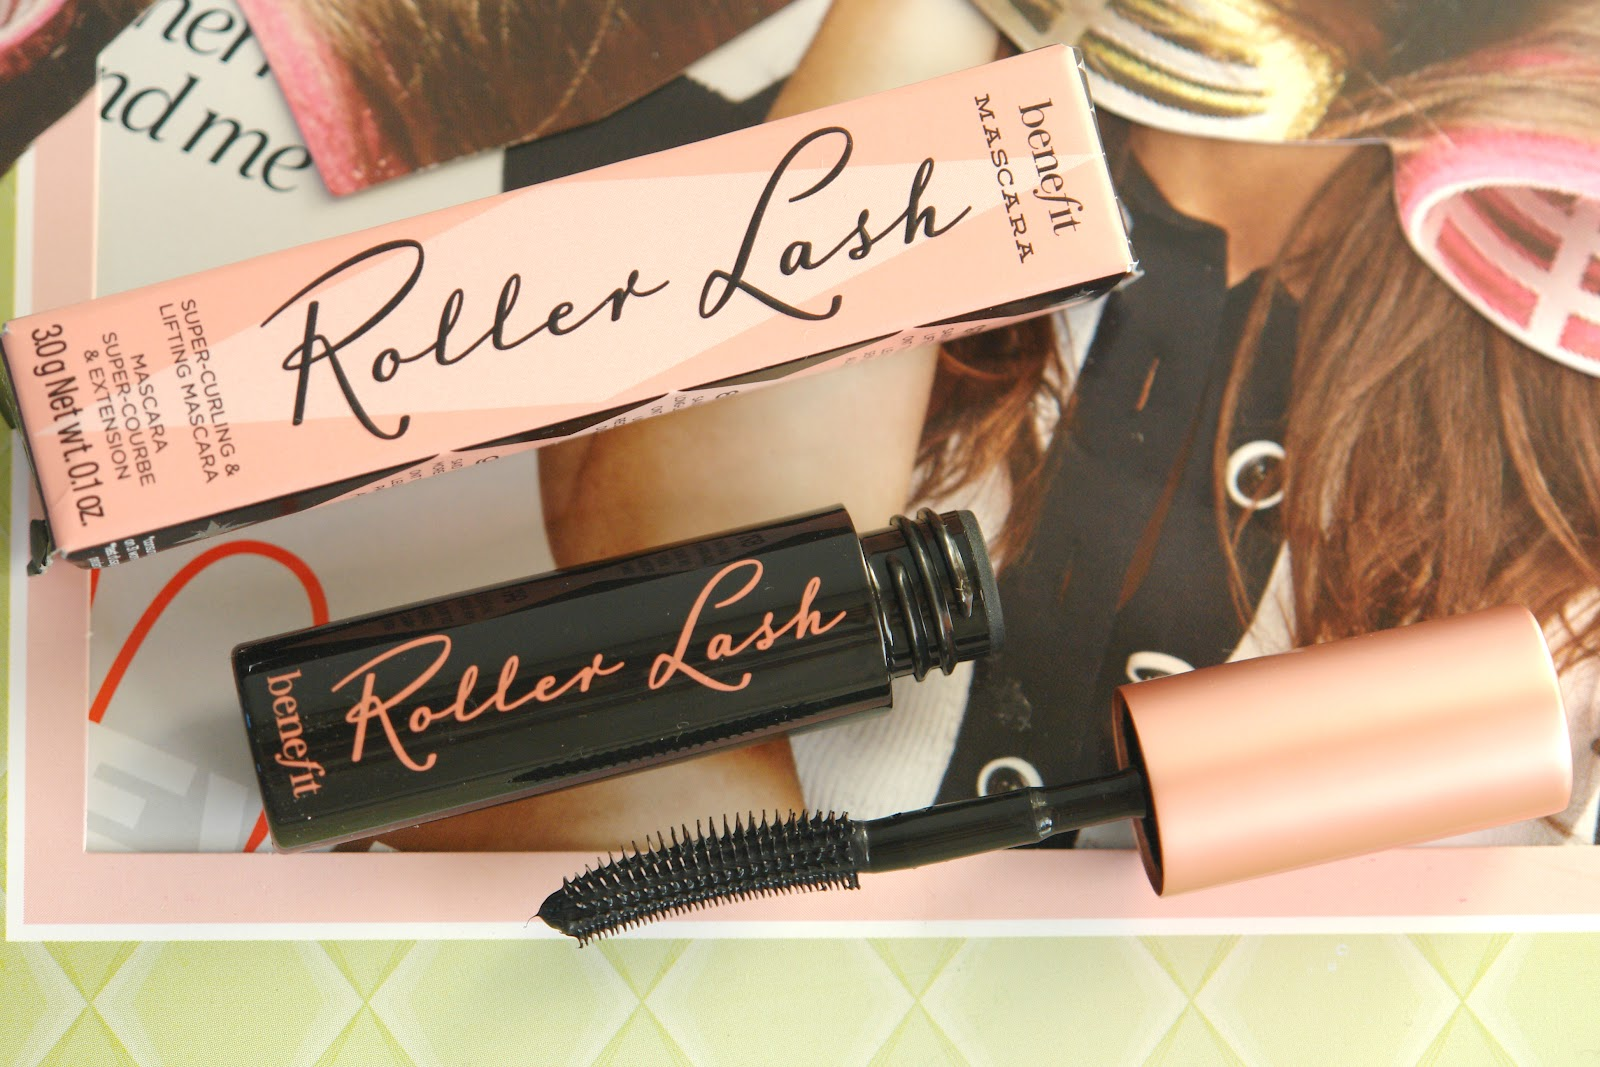 Benefit Roller Lash mascara, Benefit, mascara, make up, beauty, review, ELLE, swatches